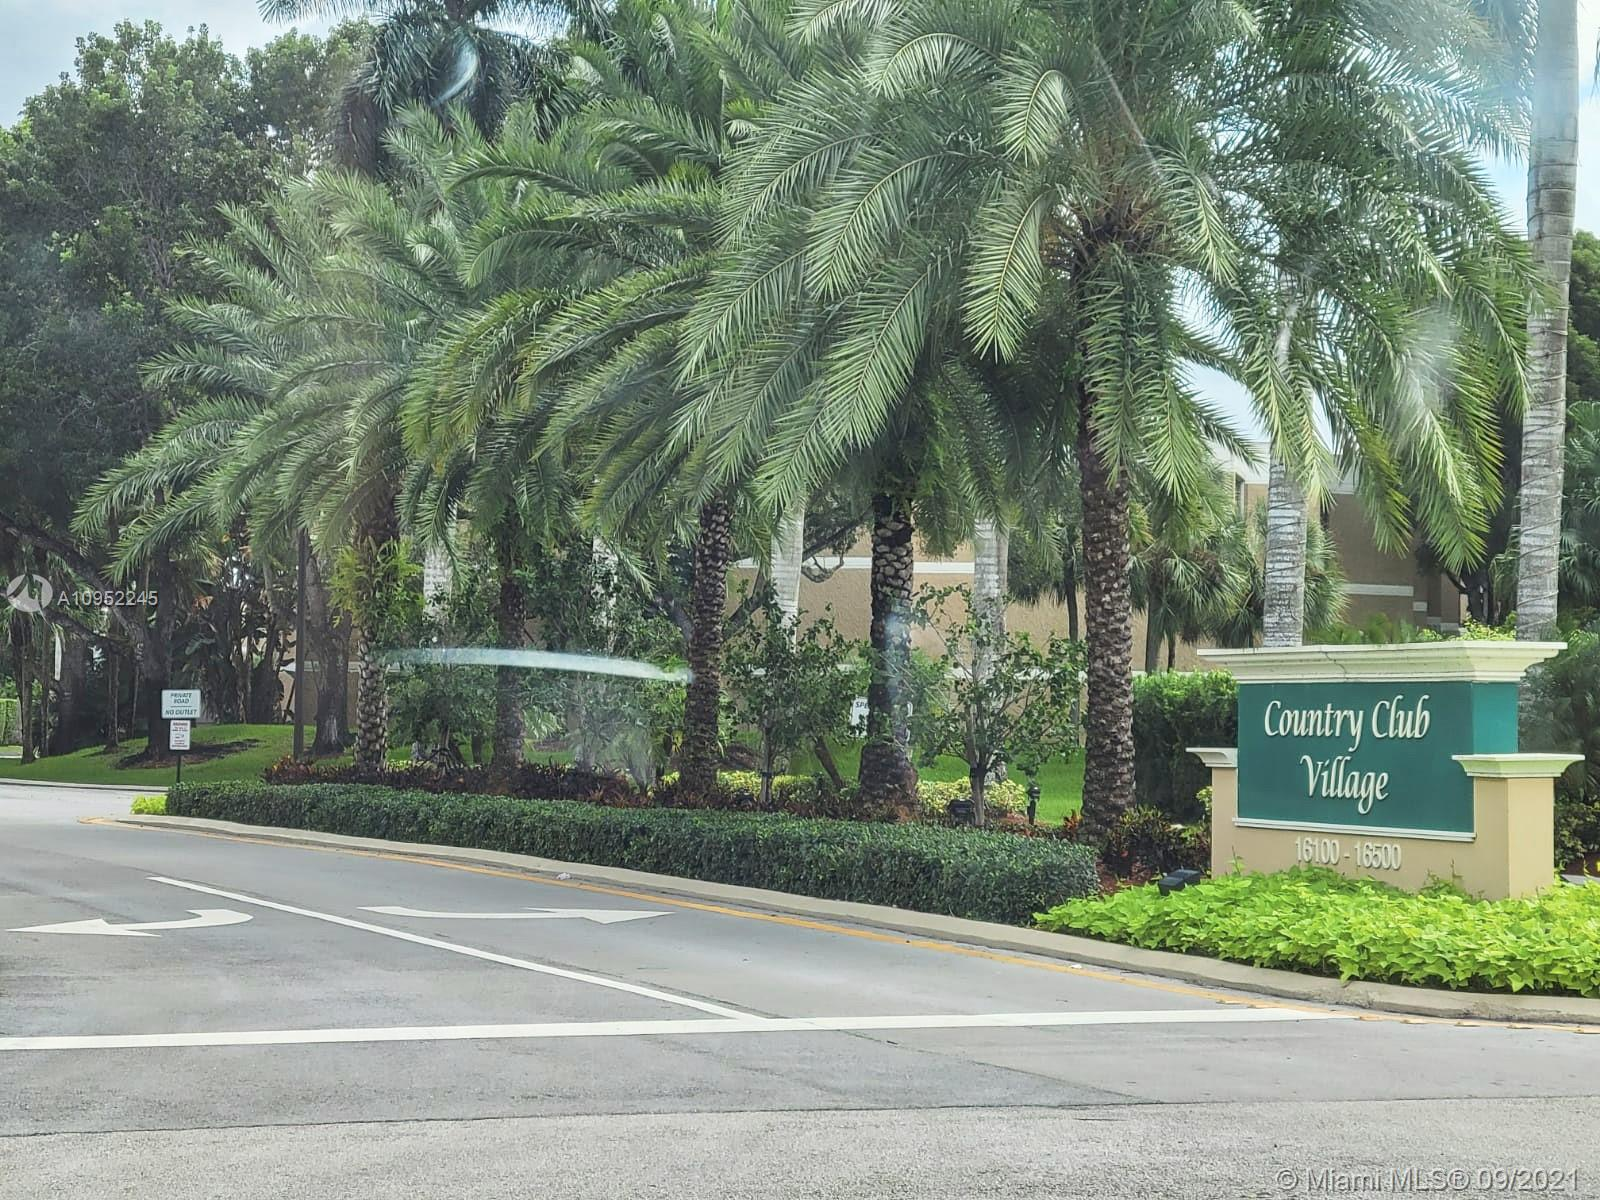 BEAUTIFULLY RENOVATED CONDO UNIT IN GOLF CLUB VILLAGE. THIS SPACIOUS 2/2.5 IS MOVE-IN READY!!! 3RD FLOOR UNIT WITH GARDEN VIEWS. STORAGE WITH HUGE CLOSETS PLUS ADDITIONAL STORAGE IN BUILDING. ENJOY RESORT STYLE LIVING AND ALL THE AMENITIES THIS COMPLEX HAS TO OFFER. AMENITIES INCLUDE A COMMUNITY POOL, 2 TENNIS COURTS, REASONABLE MEMBERSHIP TO BONAVENTURE TOWN CENTER.